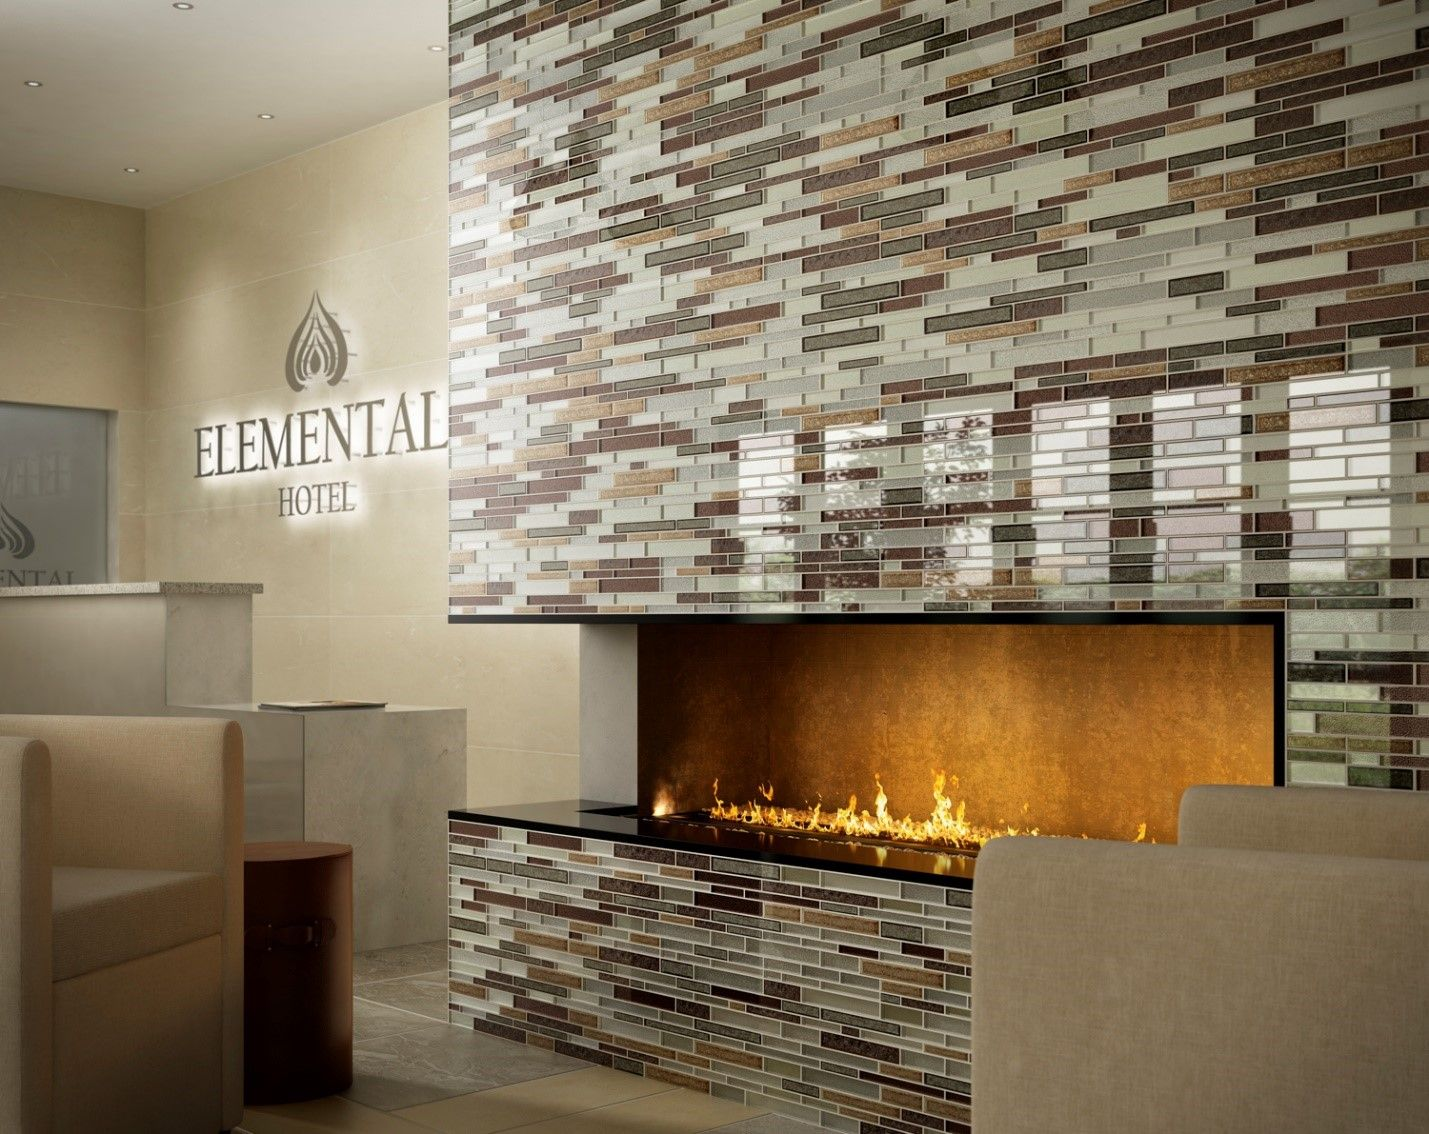 Explore The Fireplace, Fireplace Ideas, And More! The Smooth And Cool  Mosaic Tile Creates A Beautiful ...